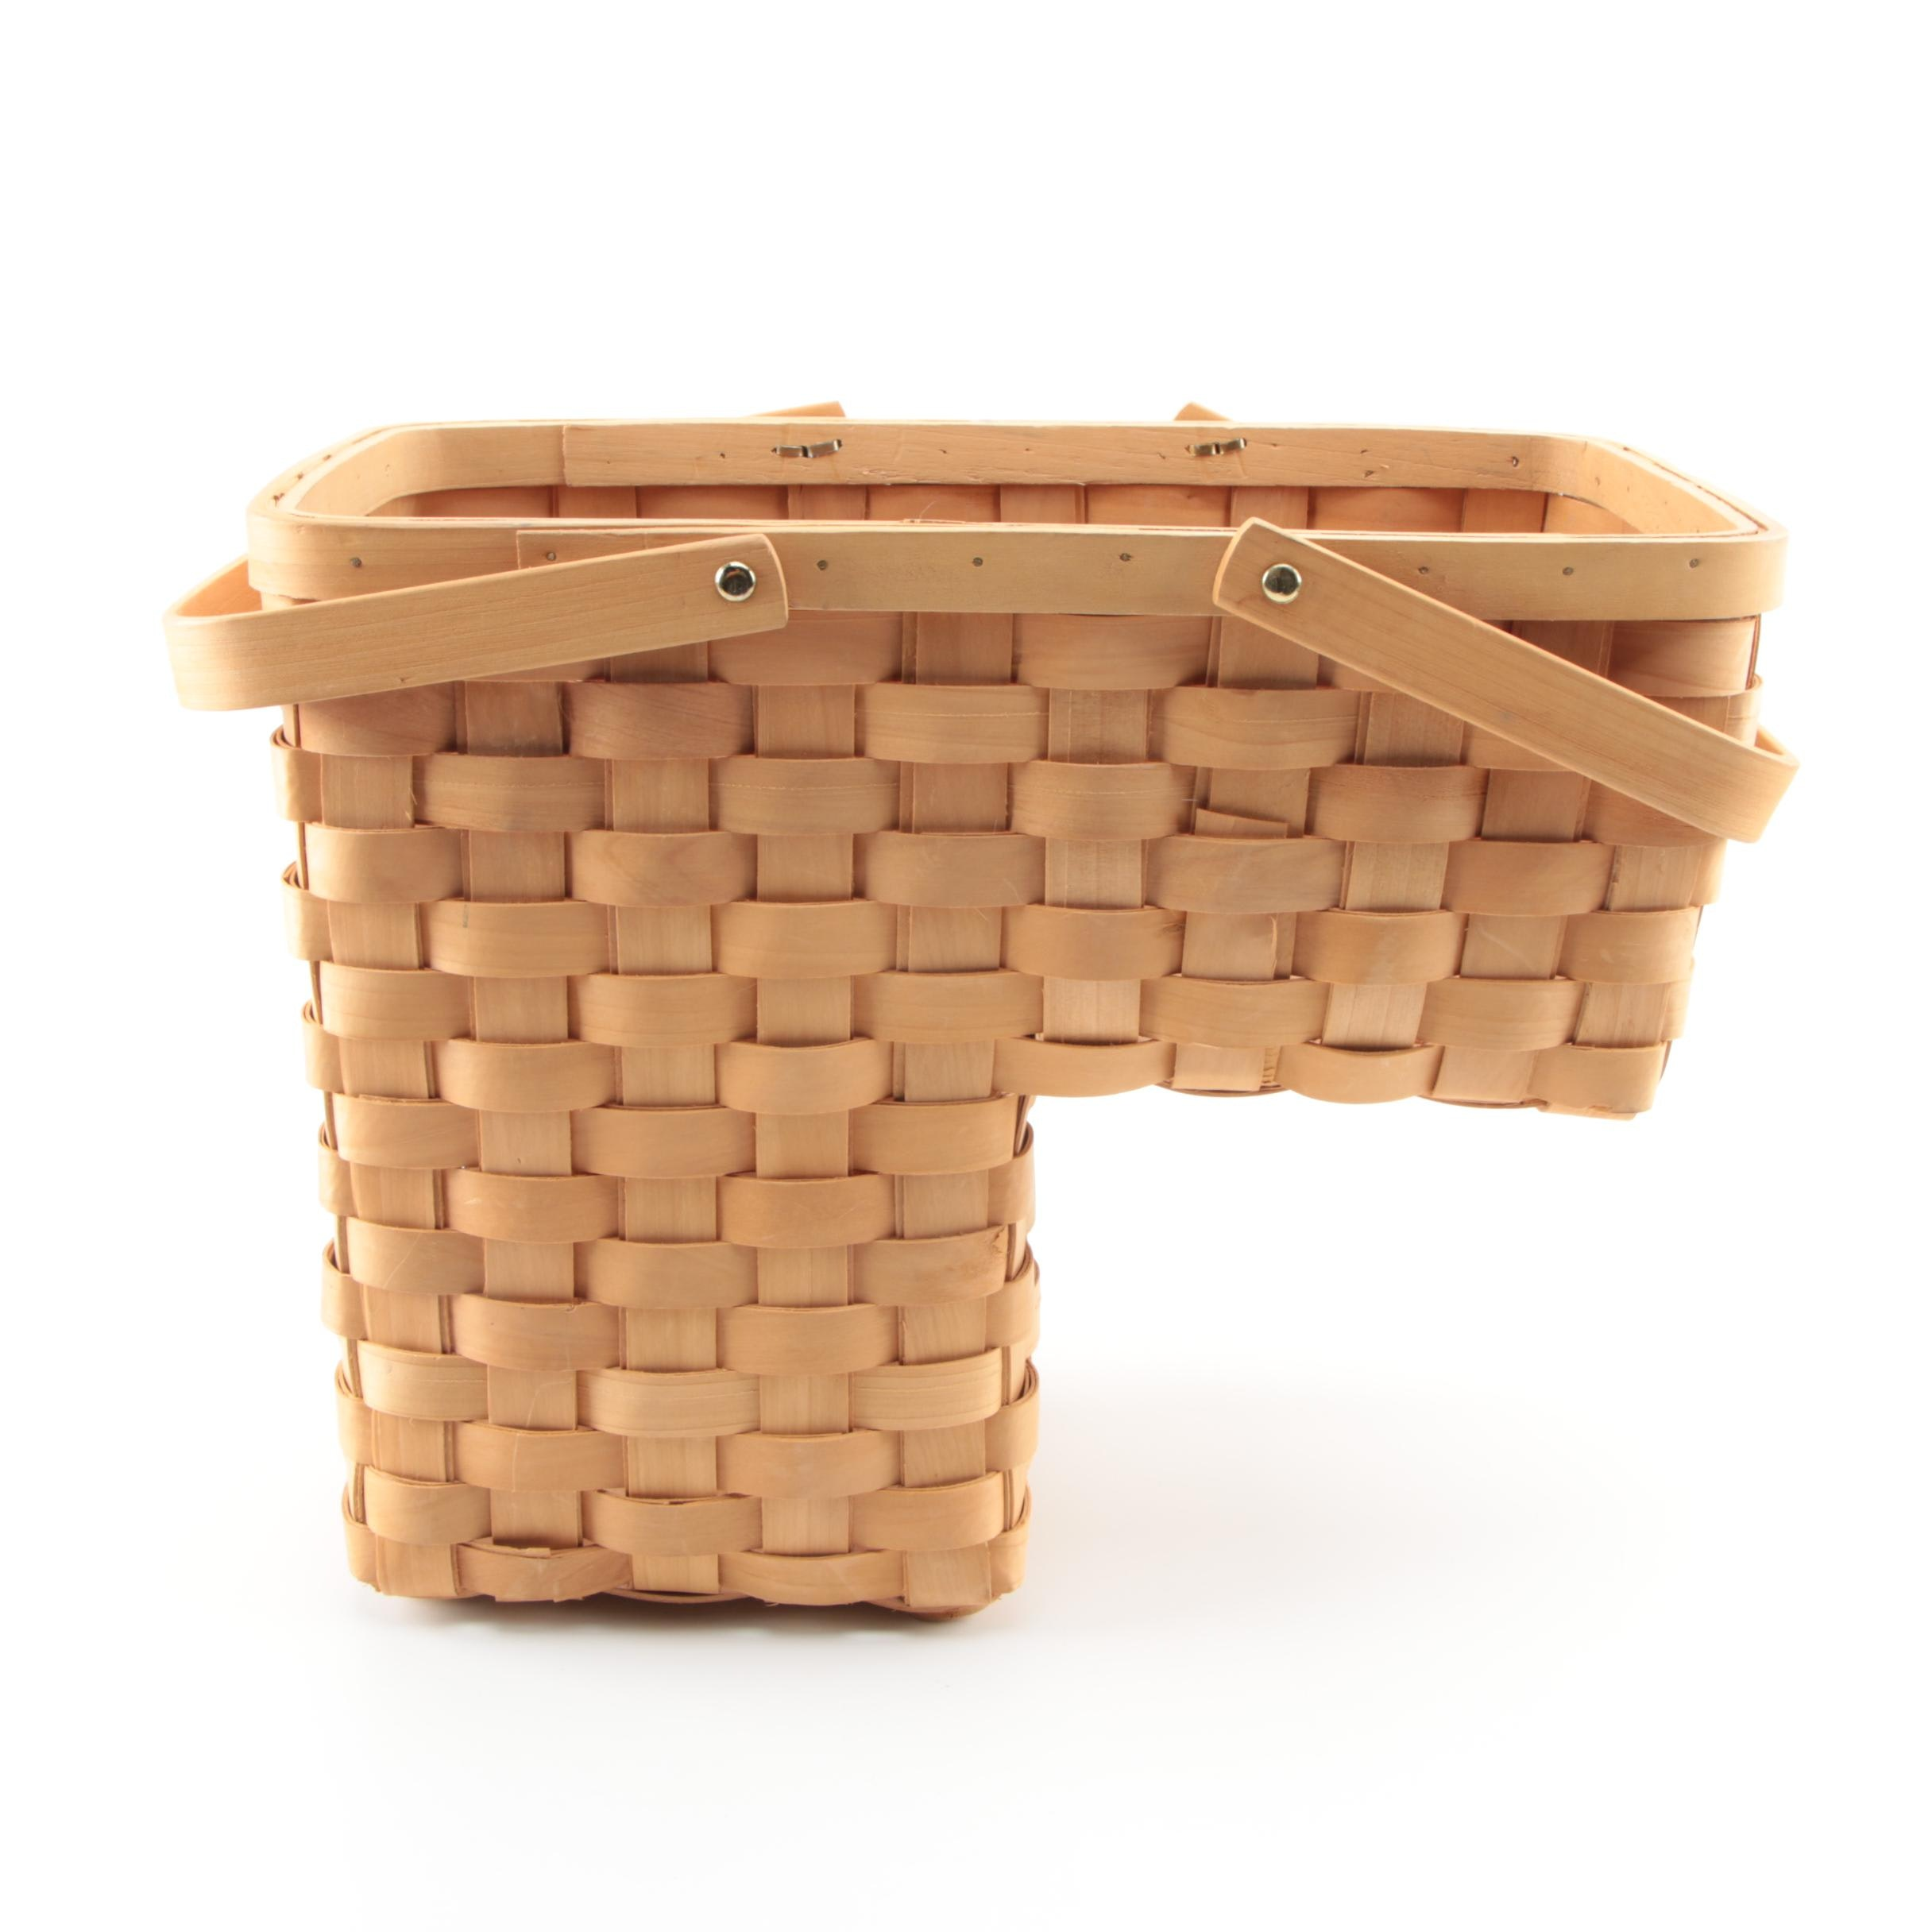 Woven Wood Stair Basket with Handles